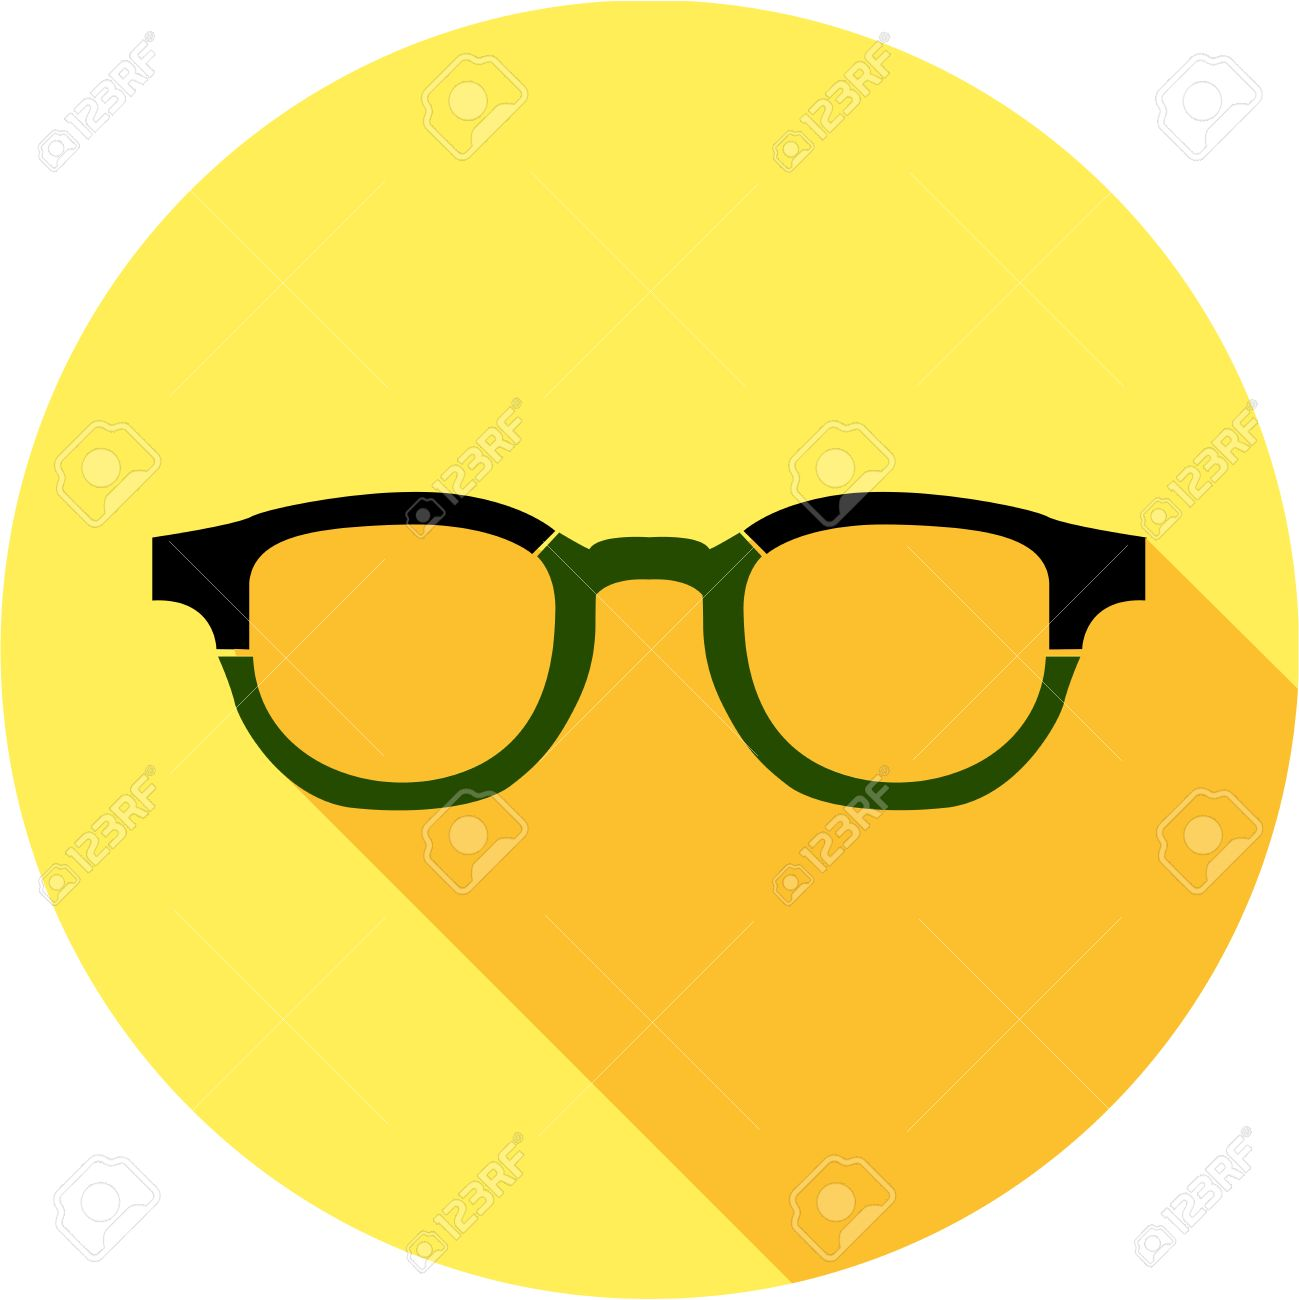 Super hero mask glasses collection flat style avatar icon colorful flat style avatar icon colorful vector illustration eps 8 thecheapjerseys Gallery